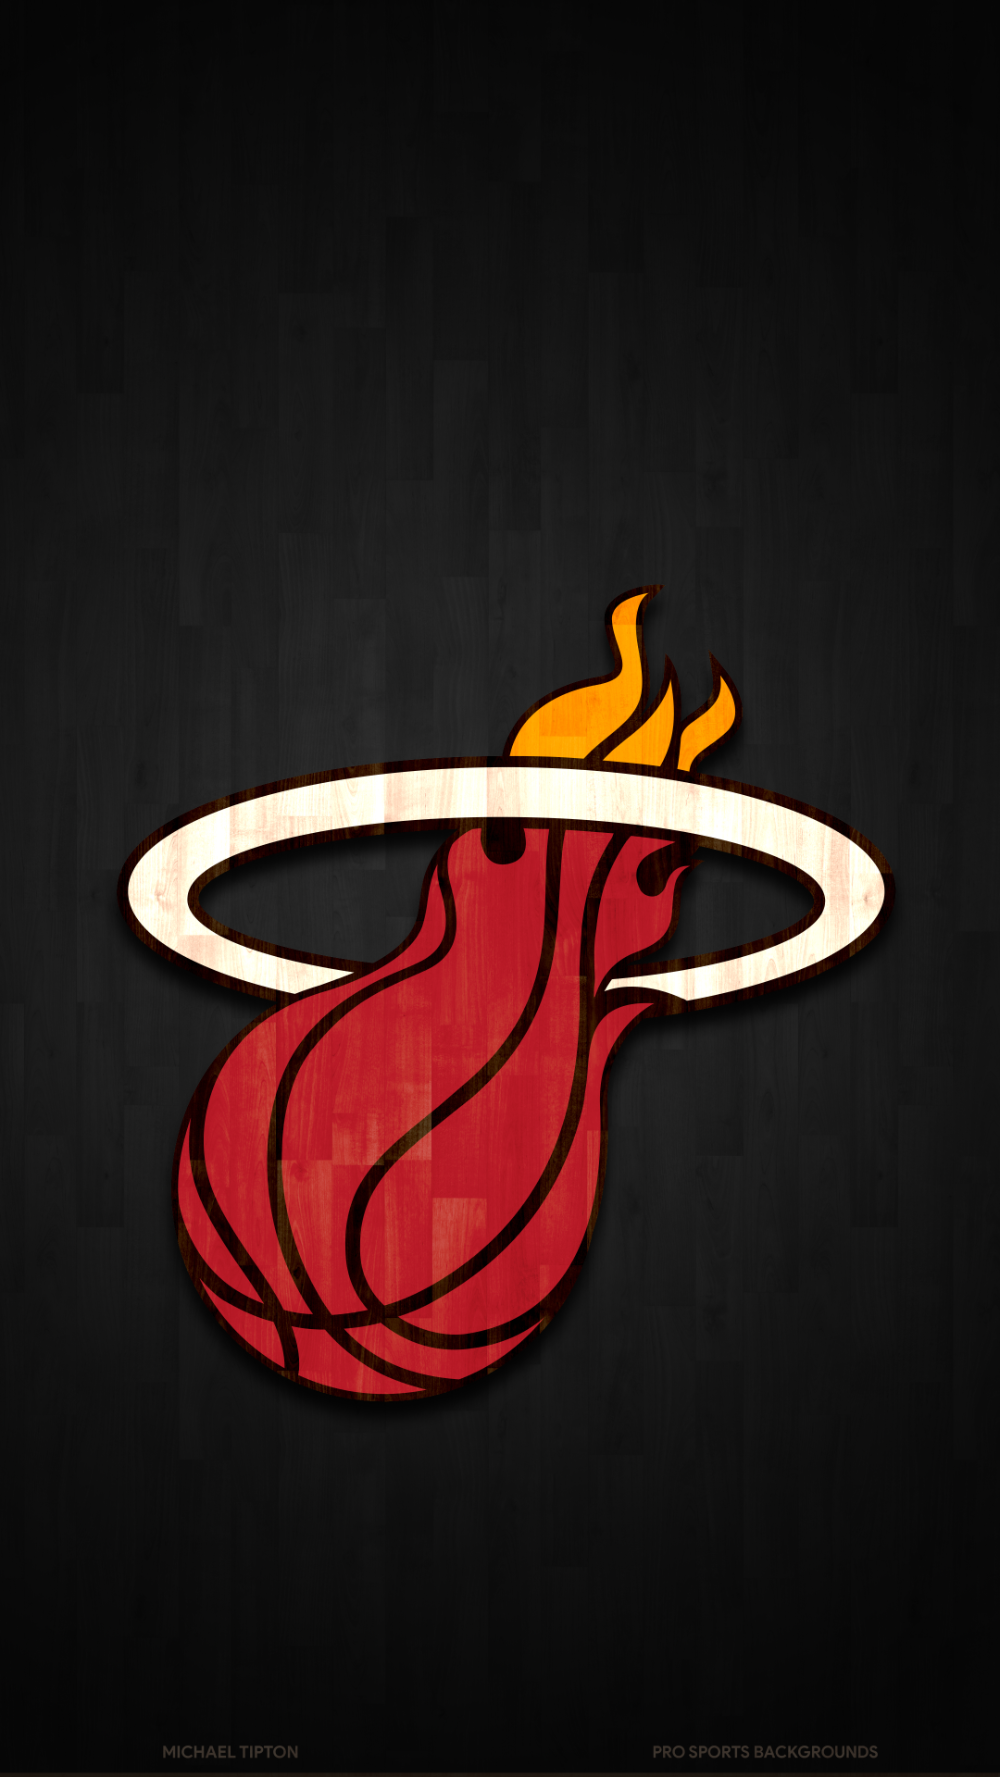 Miami Heat Wallpapers Pro Sports Backgrounds Miami Heat Miami Heat Game Miami Heat Basketball